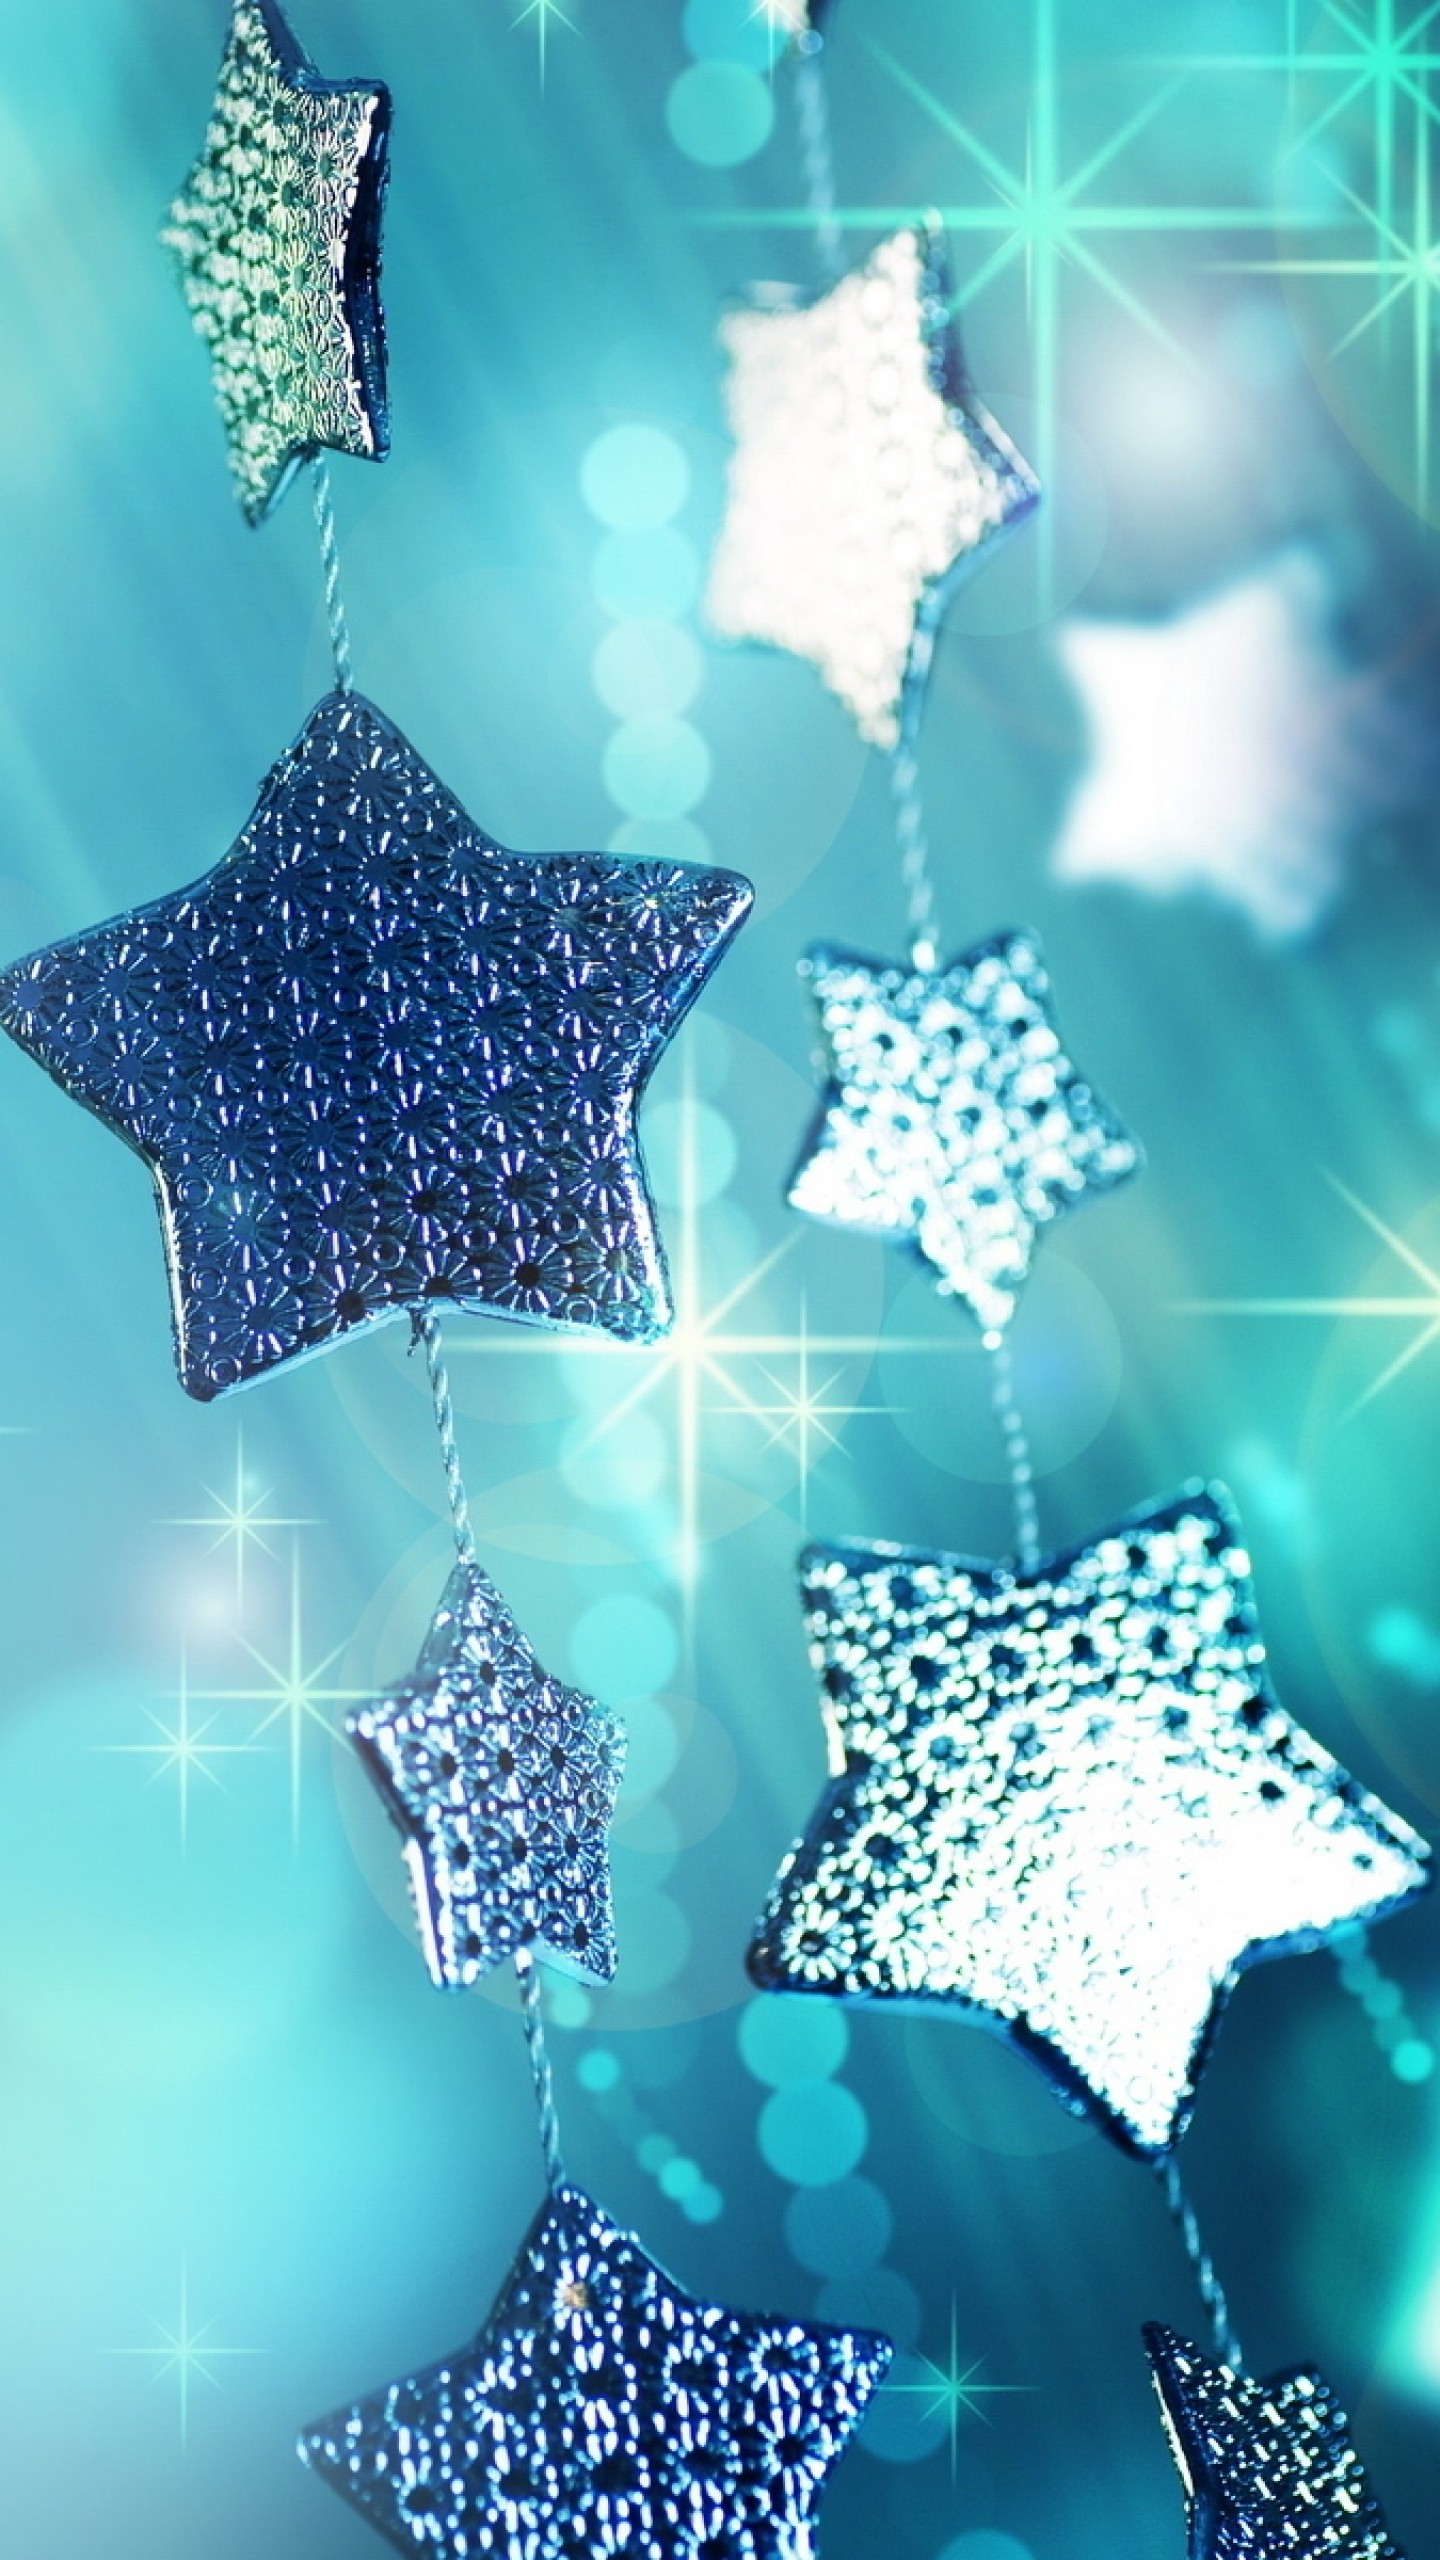 1440x2560 Preview wallpaper glitter, garland, blue, christmas ornaments, stars,  sparks, macro